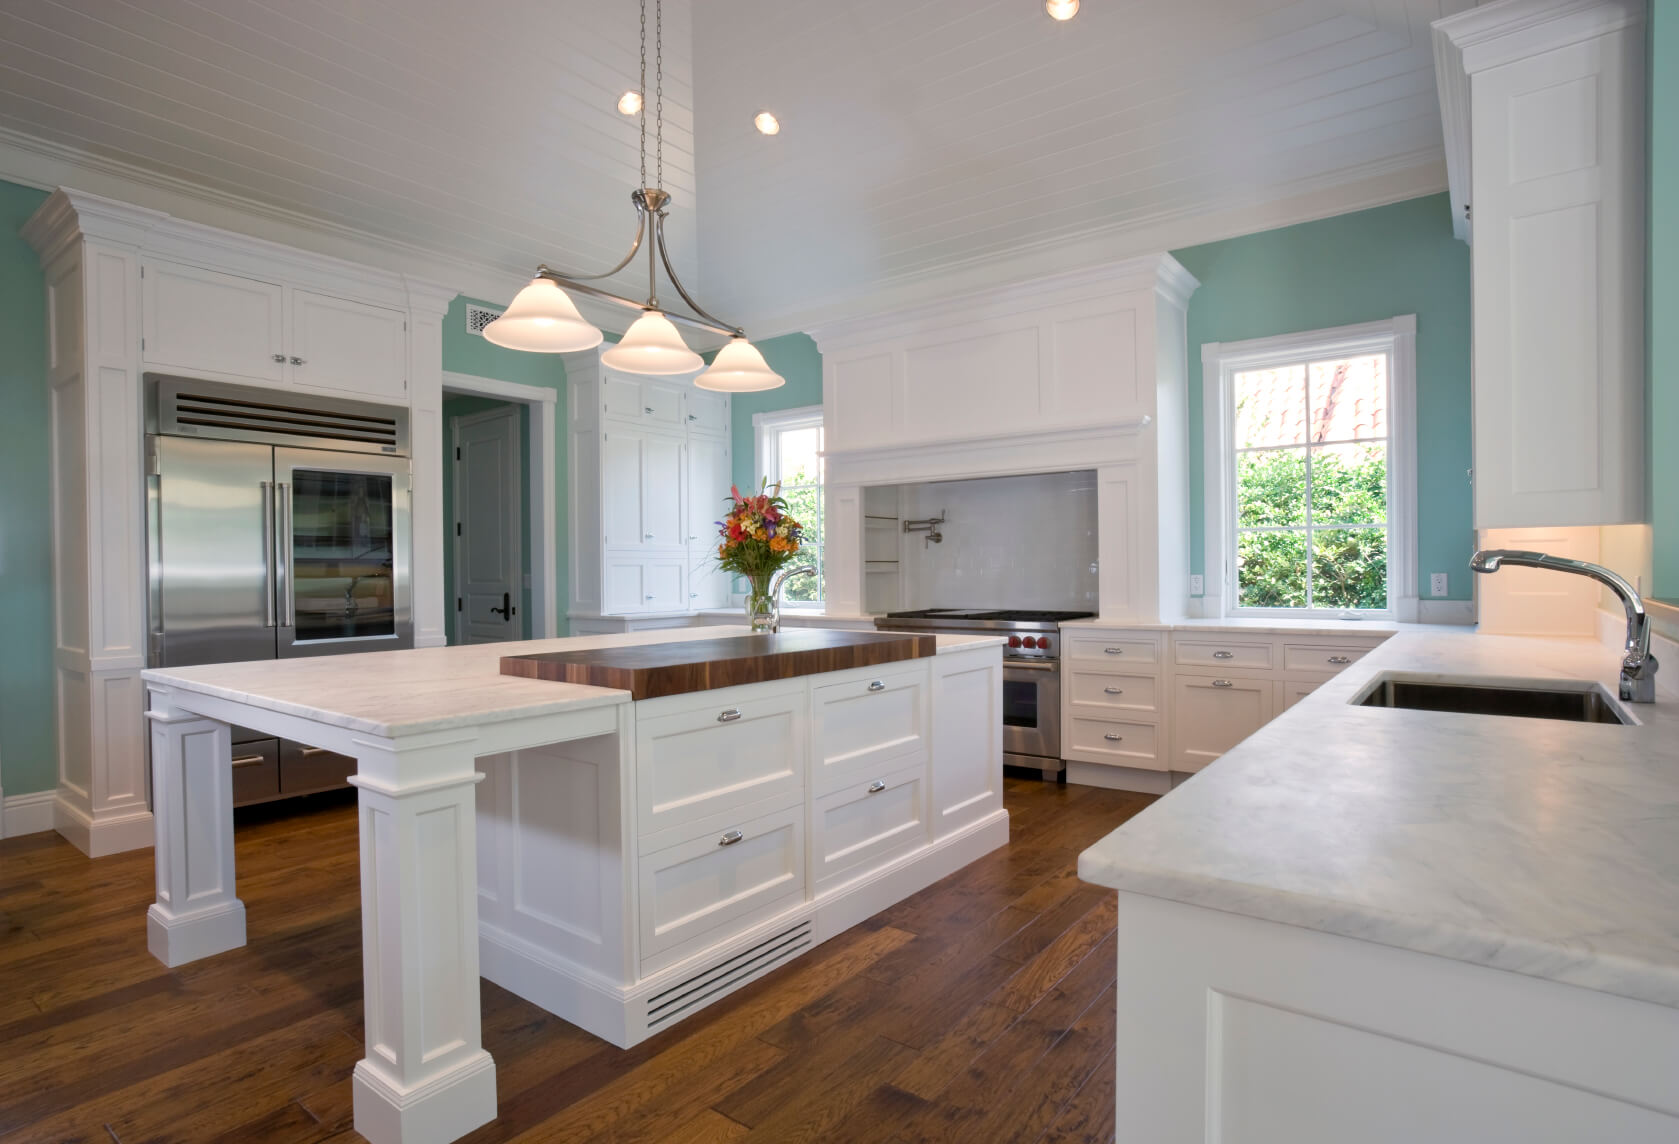 white kitchen designs pictures hardwood floor in kitchen Light mint blue paint adds burst of color to this all white kitchen over natural